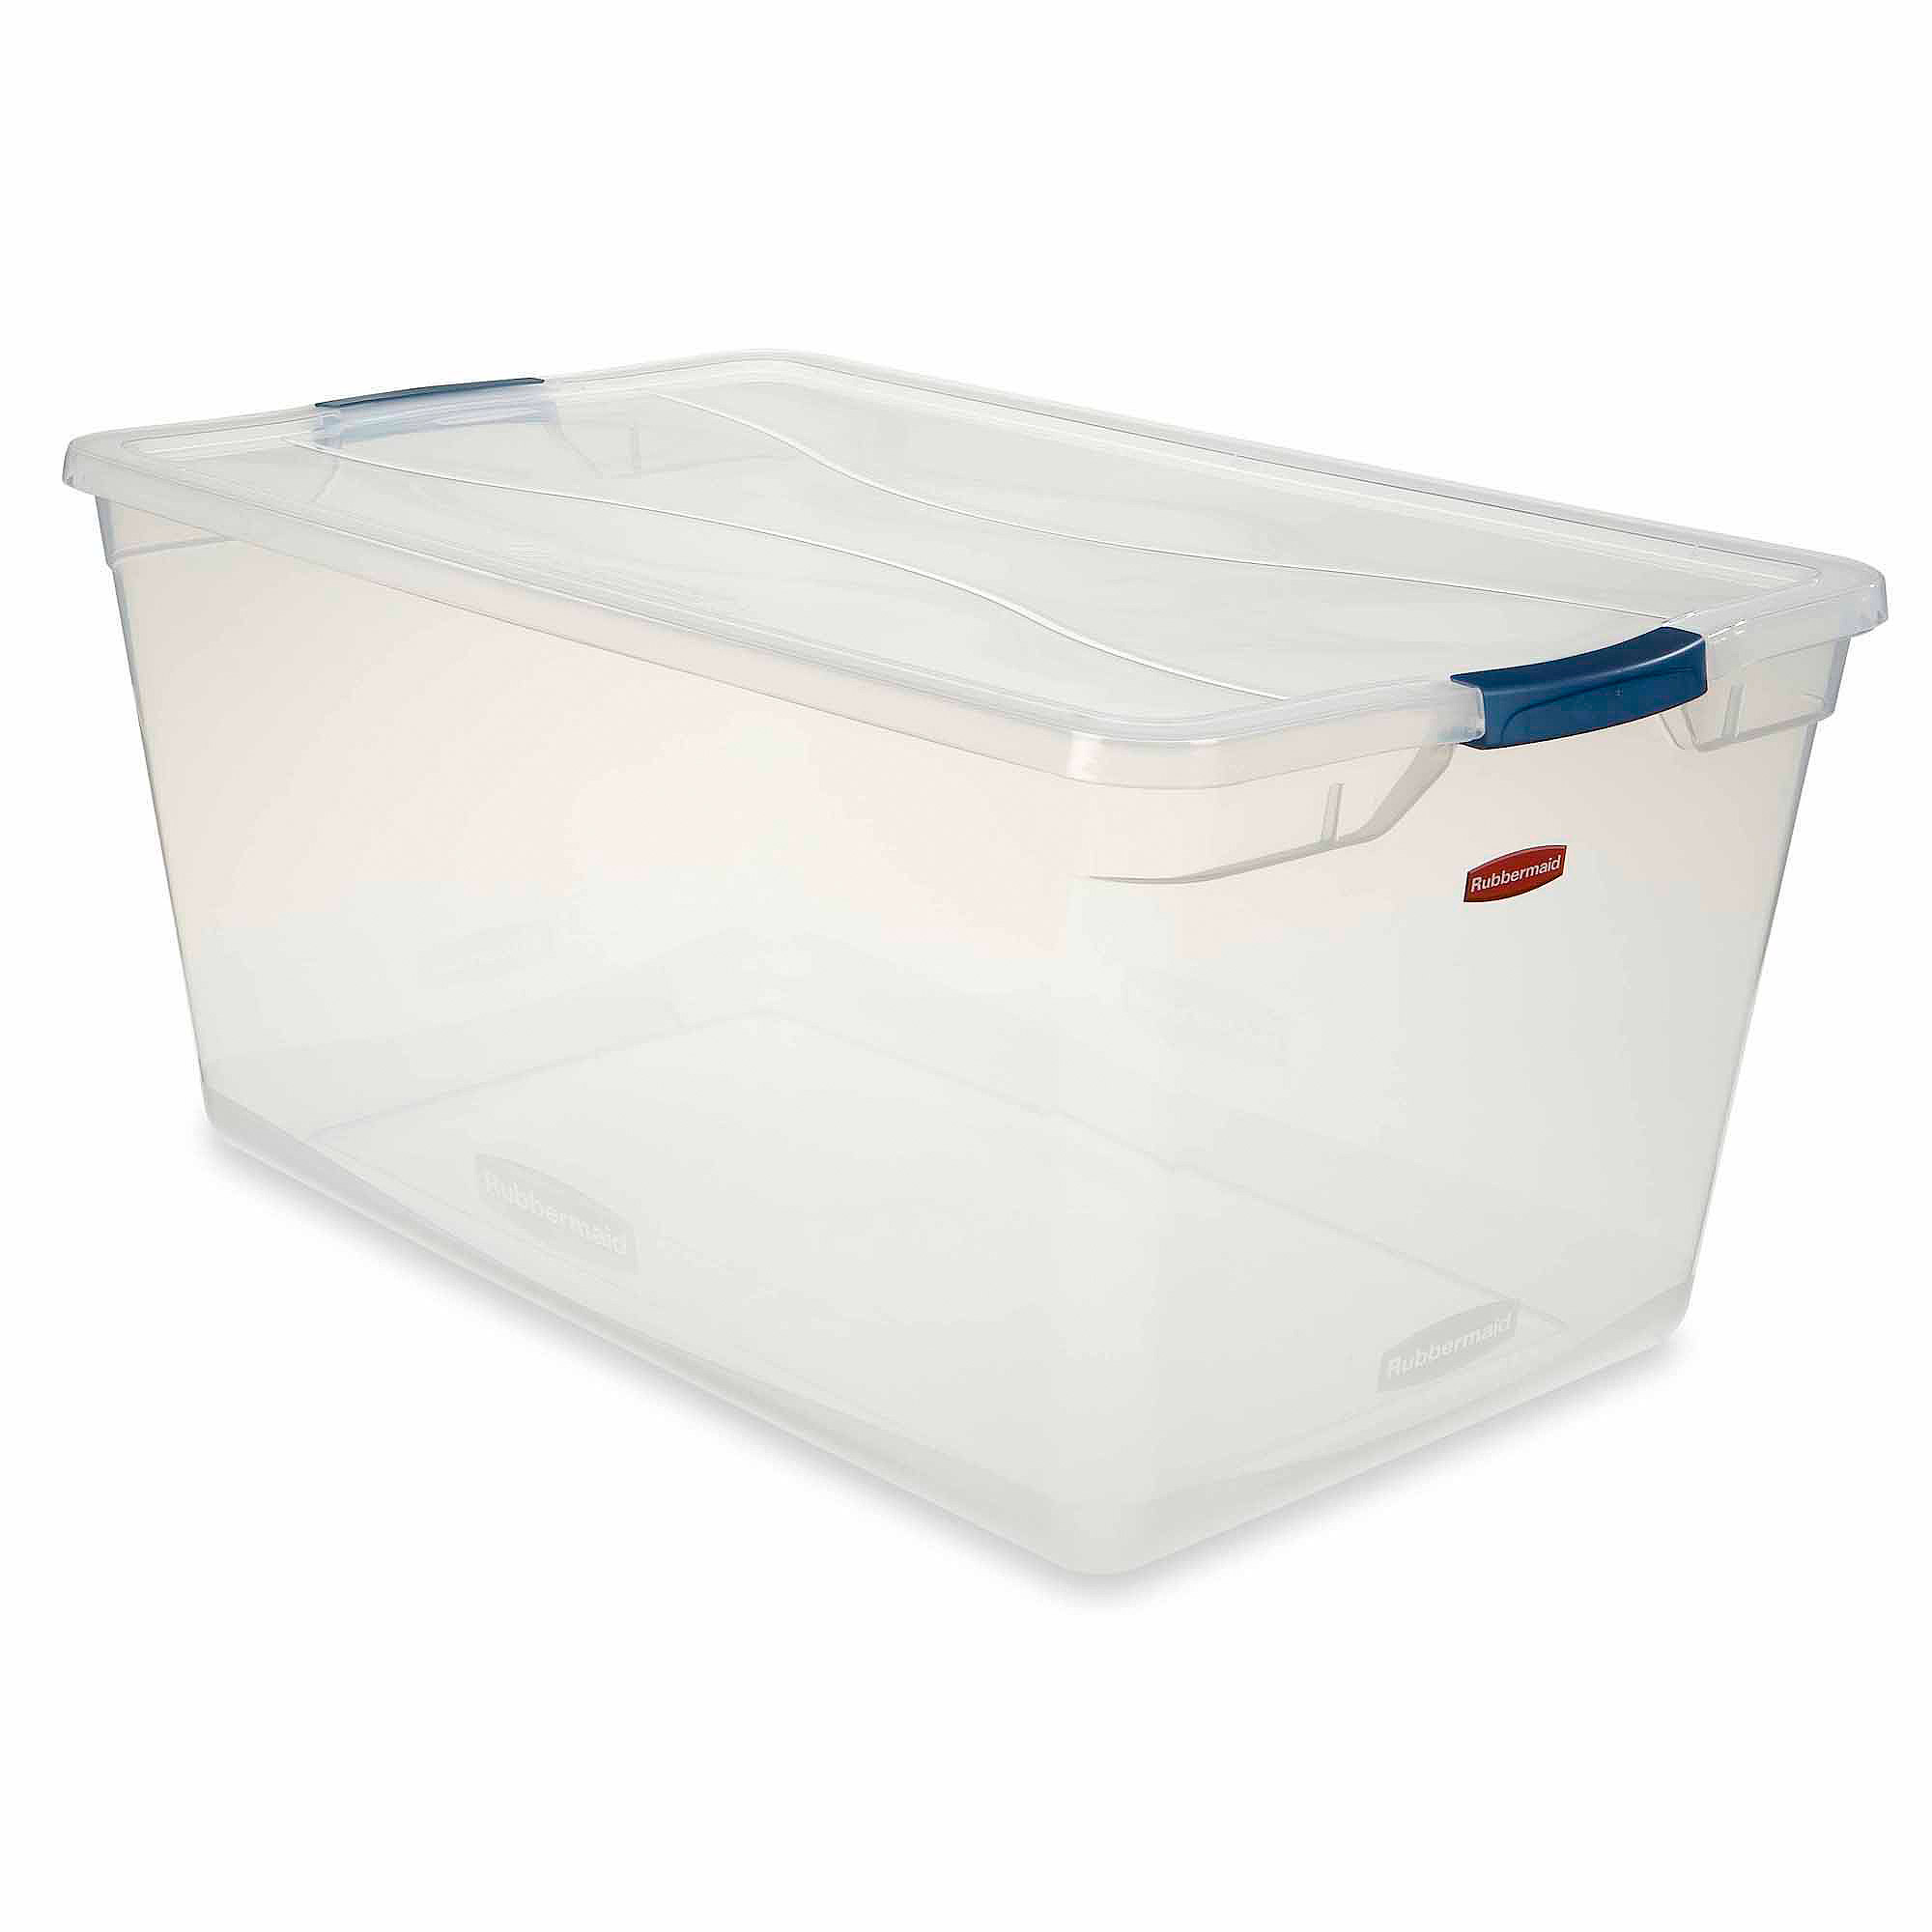 Rubbermaid Clever Store Clears Standard Latch Storage Container 95 qt Clear  sc 1 st  Walmart & Rubbermaid Storage Totes